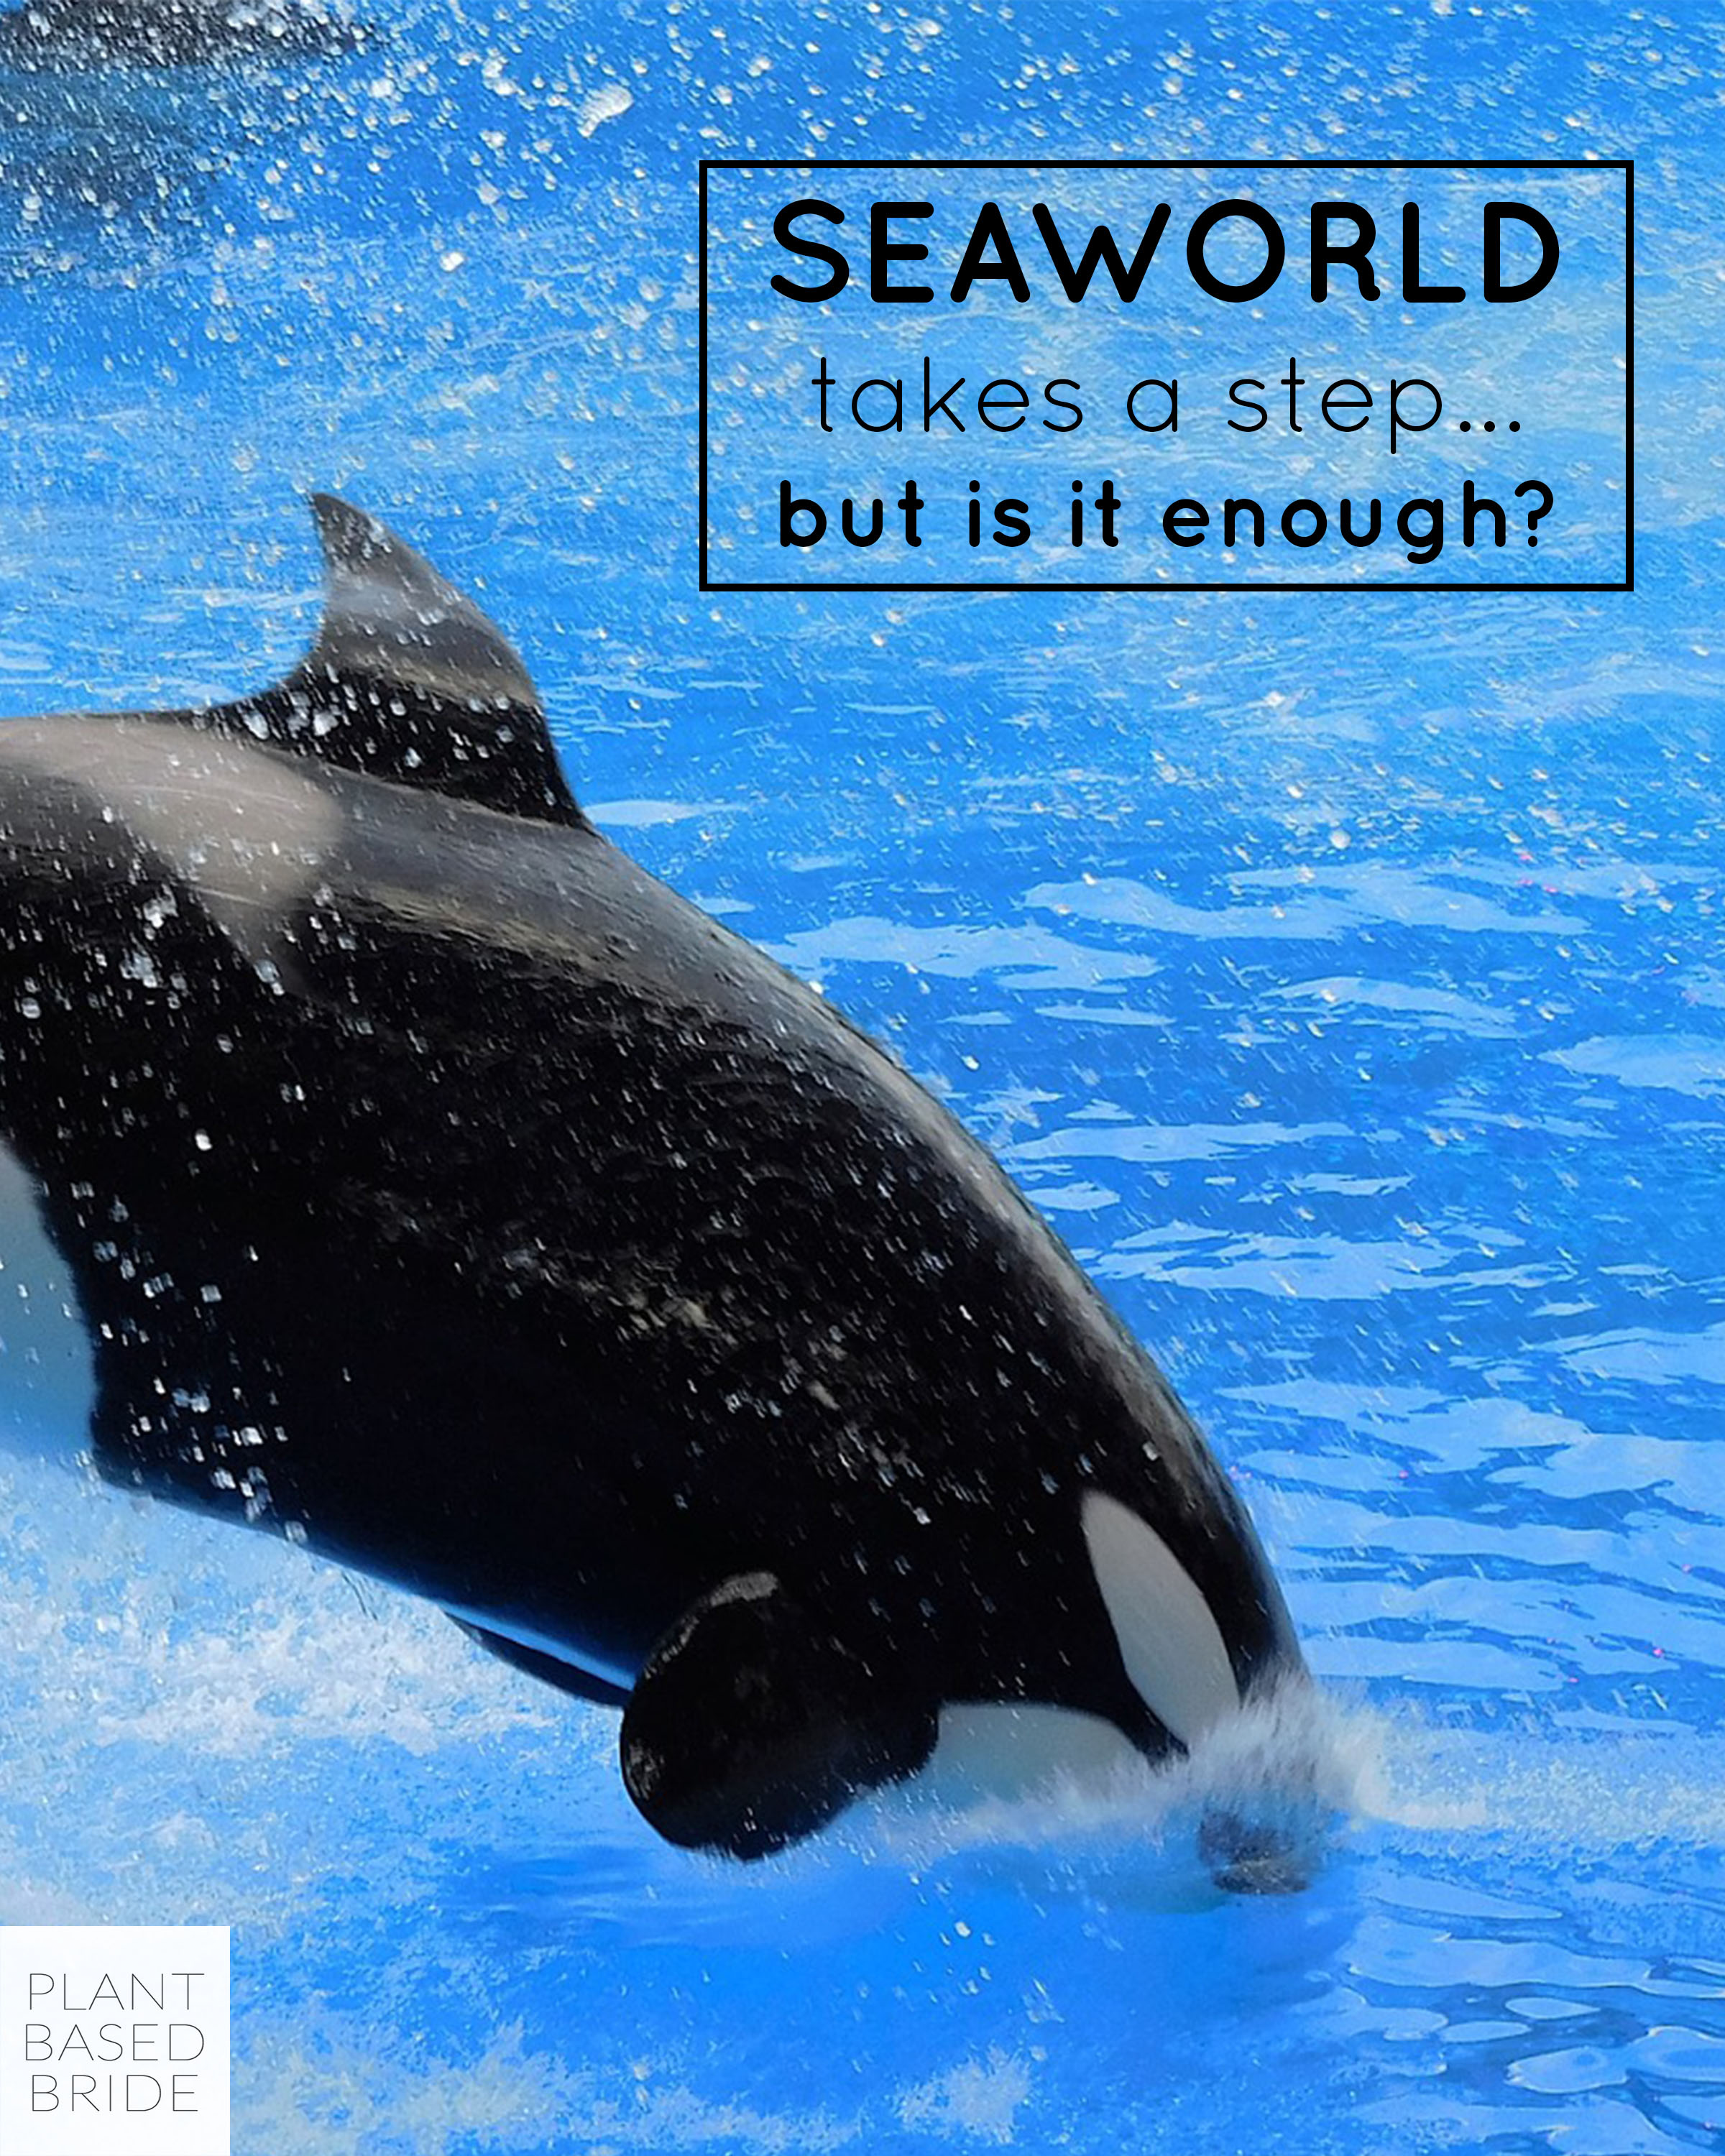 SeaWorld is ending its breeding program, but is it enough? // Plant Based Bride